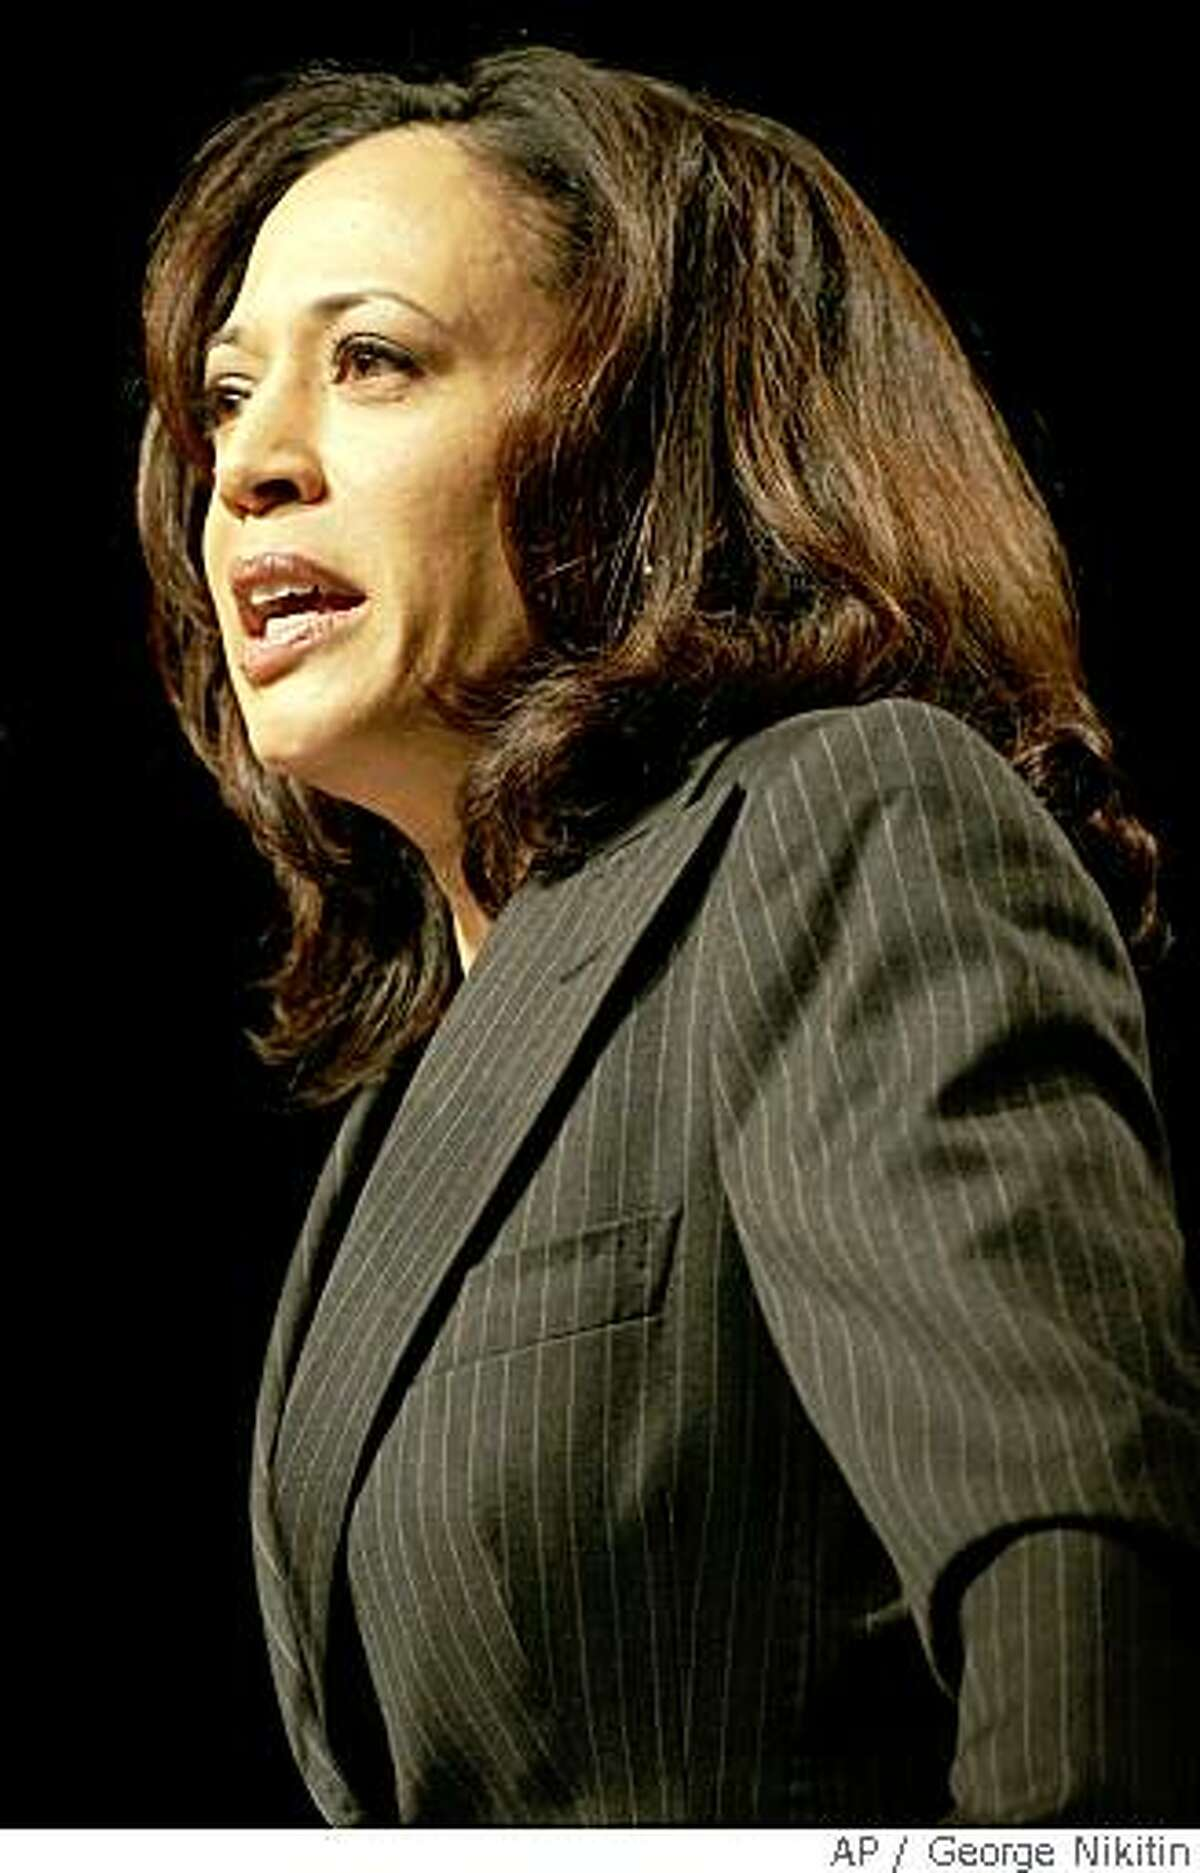 San Francisco District Attorney, Kamala Harris speaks in support of Democratic presidential hopeful Sen. Barack Obama, D-Ill., at the California Democratic Convention, Sunday, March 30, 2008 in San Jose, Calif. (AP Photo/George Nikitin)